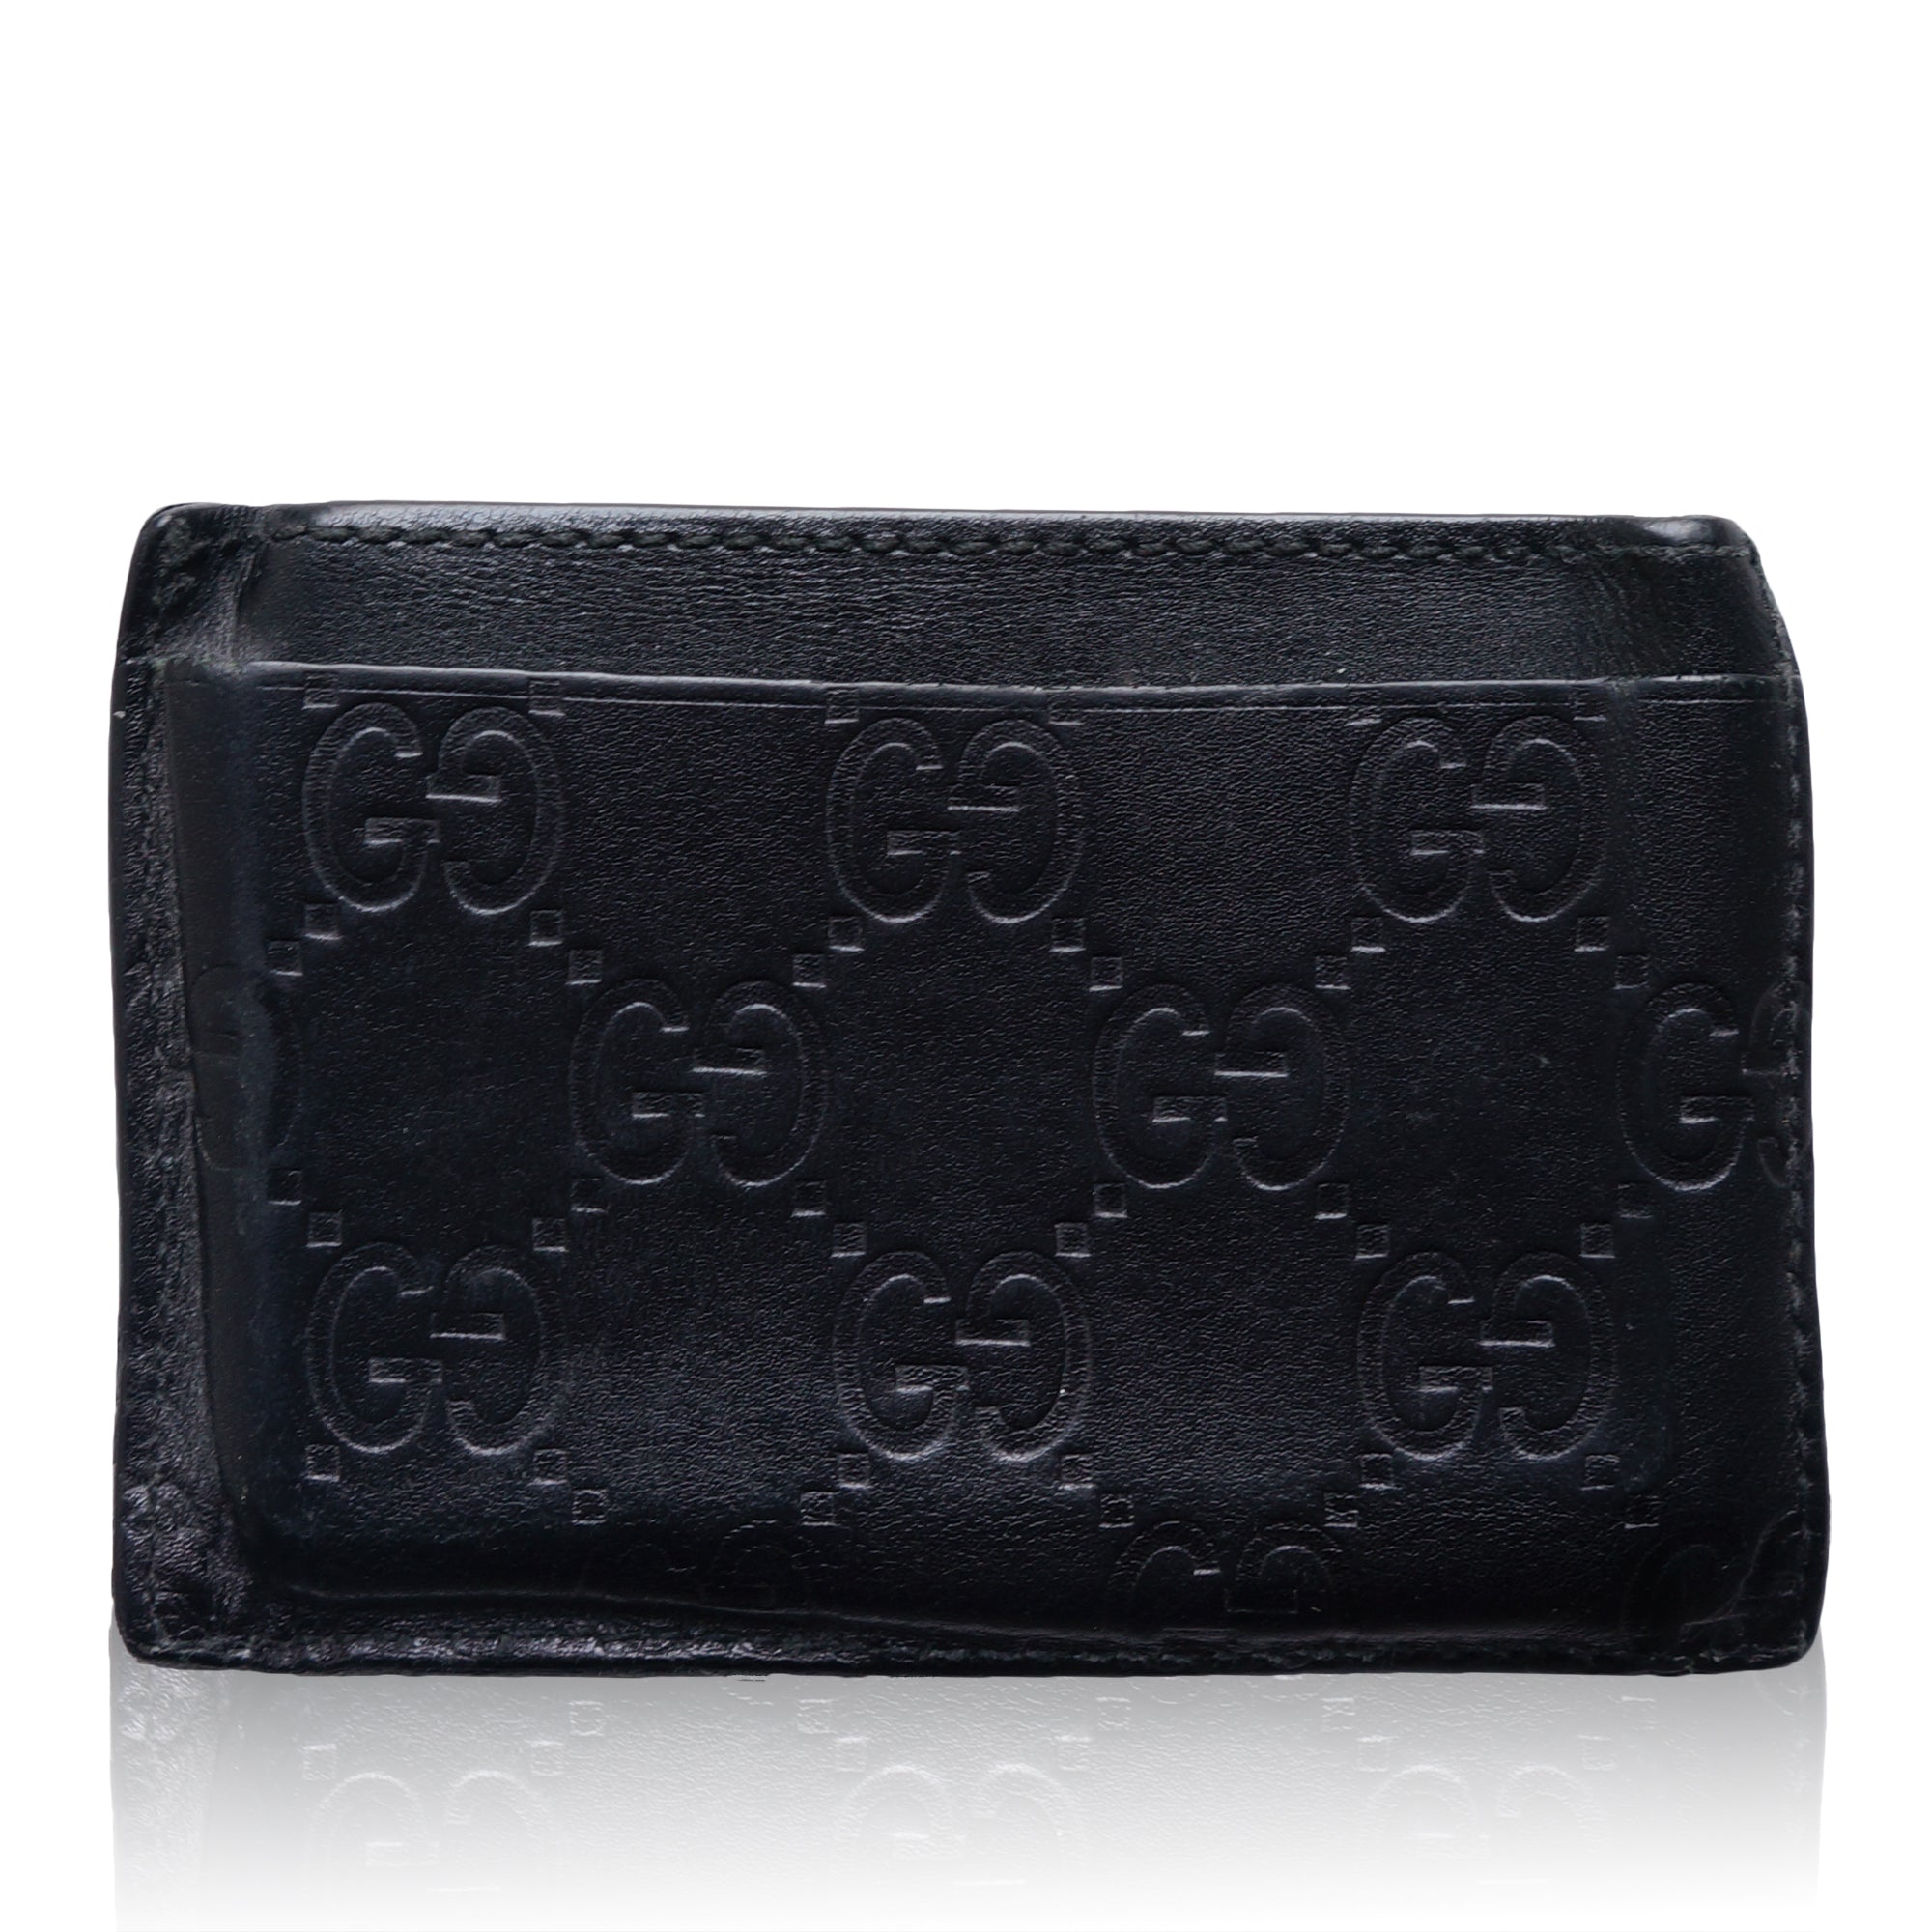 625fca55c40c GUCCI GG GUCCISSIMA CREDIT CARD LEATHER HOLDER Shop online the best value  on authentic designer used ...